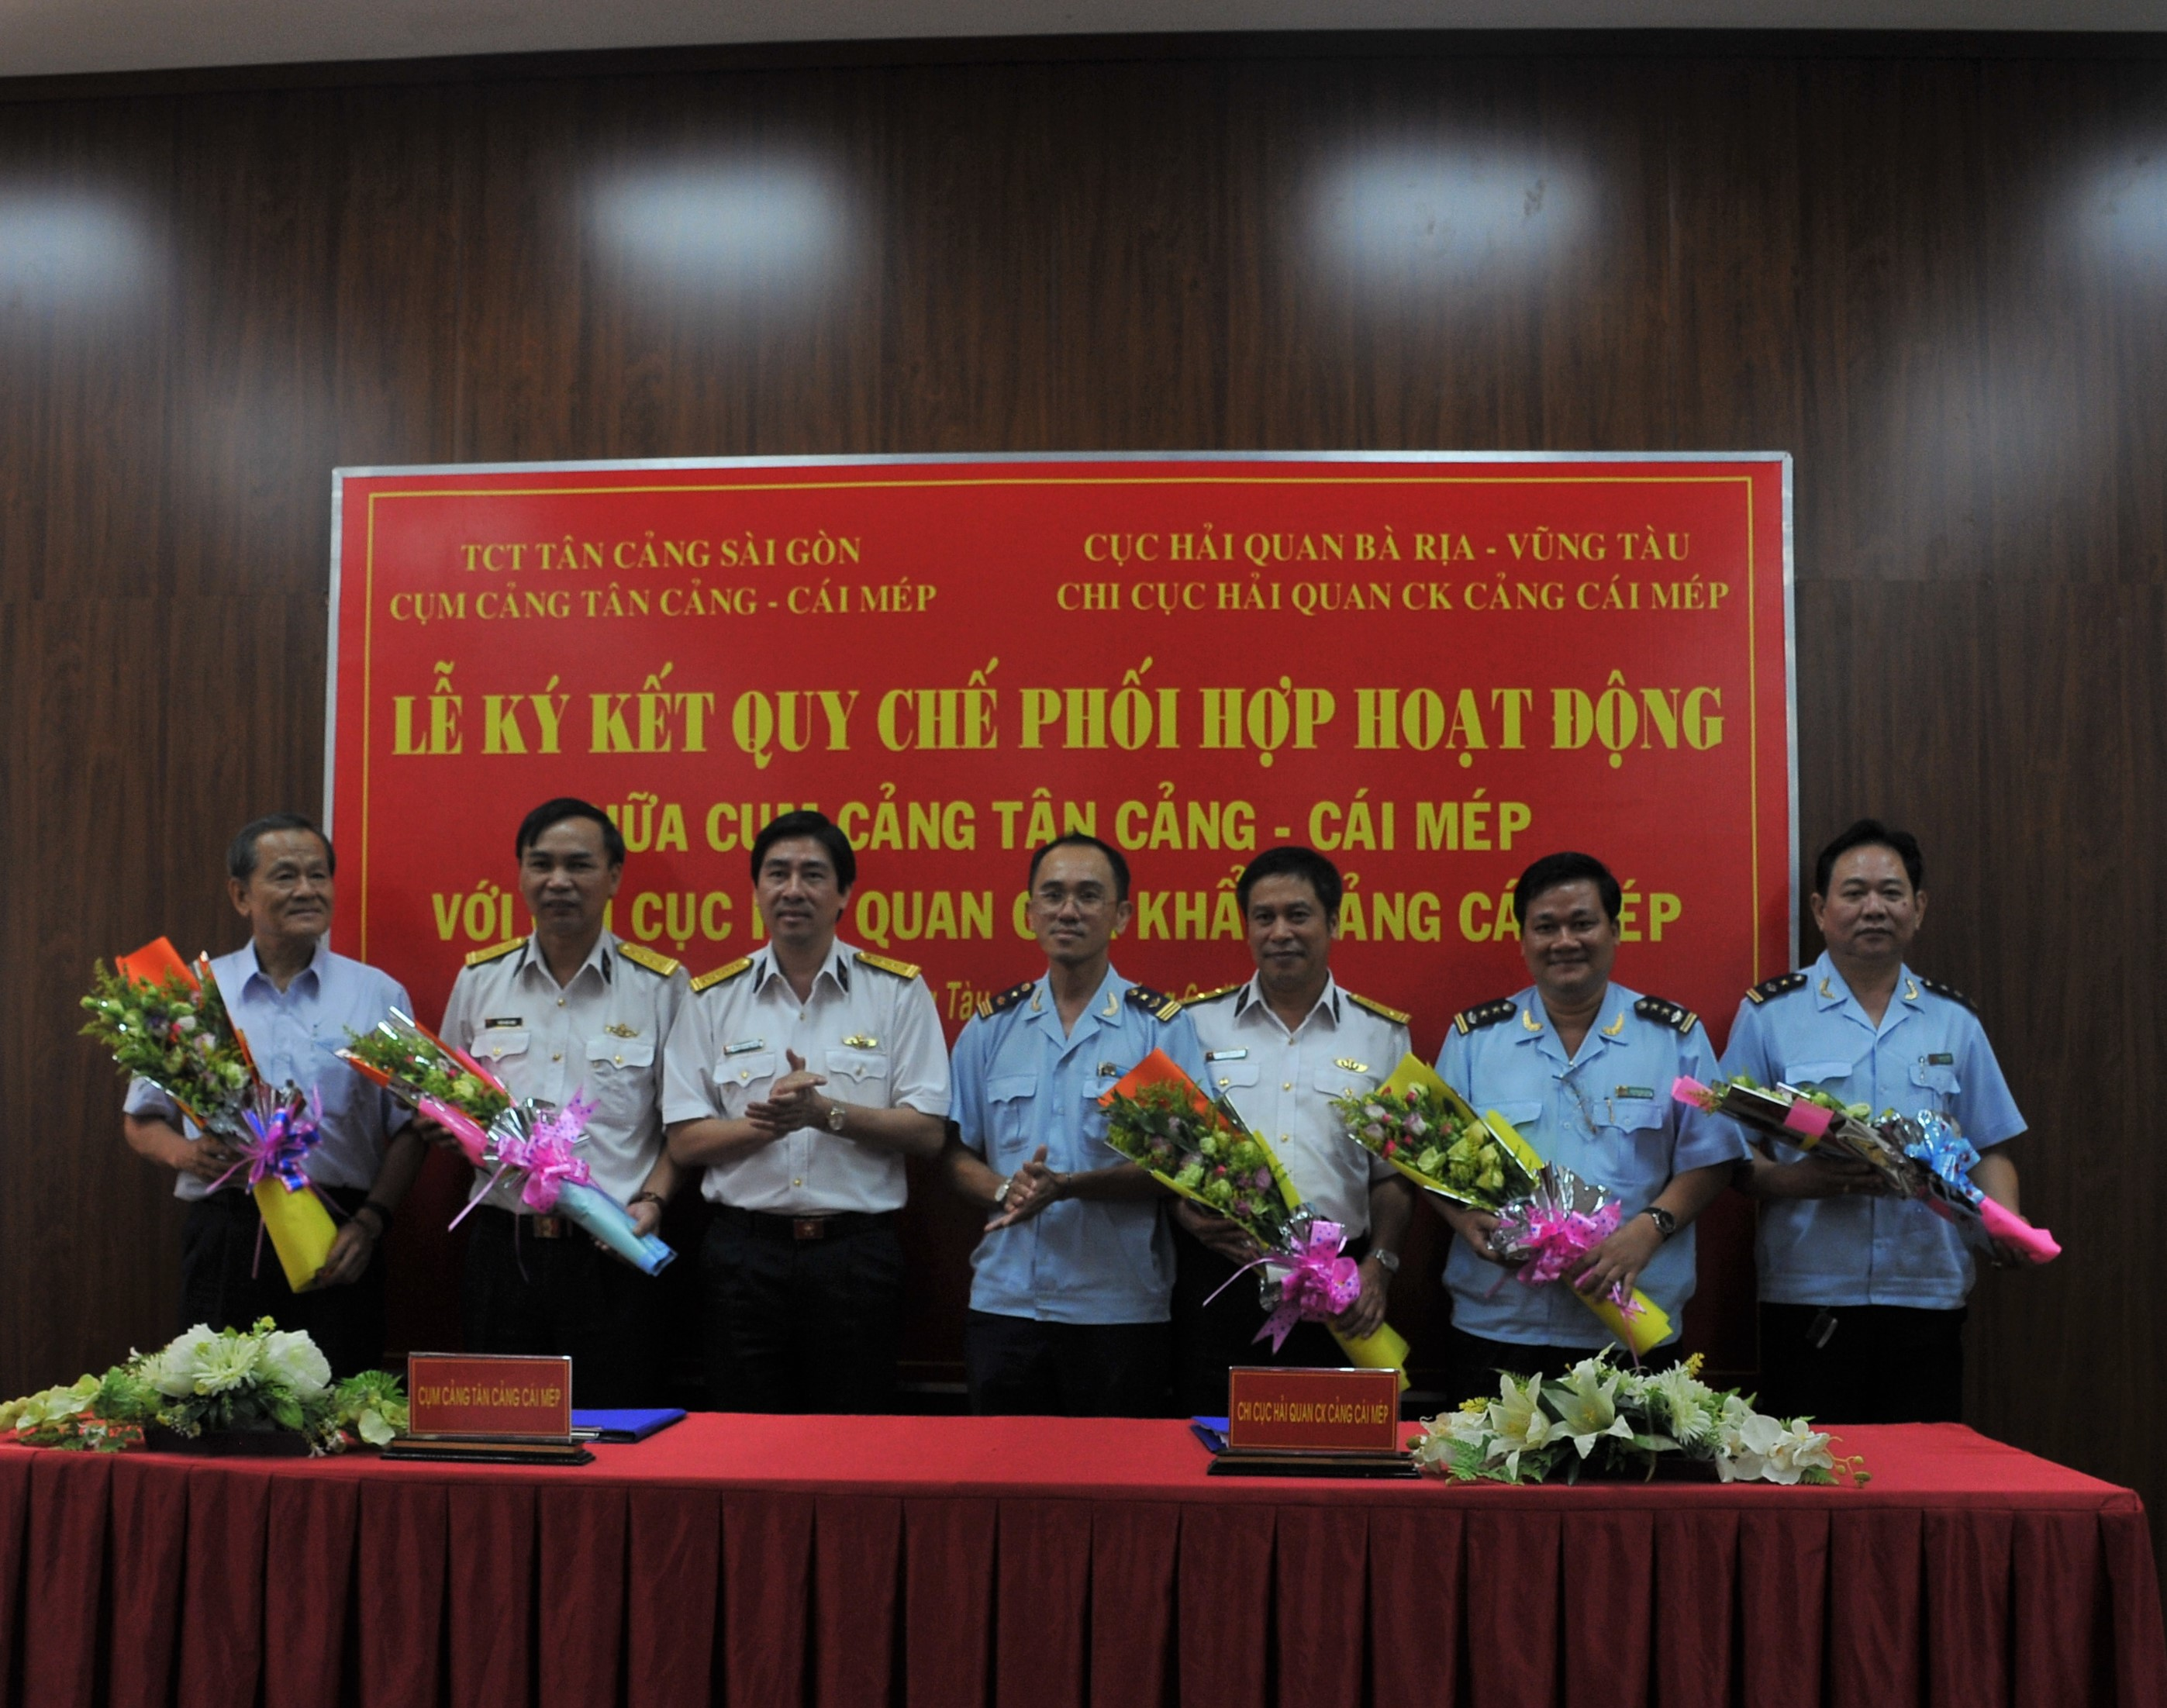 Tan Cang - Cai Mep Port (SNP) inks deal with Cai Mep Sea-port Customs Branch for Coordinating Regulations